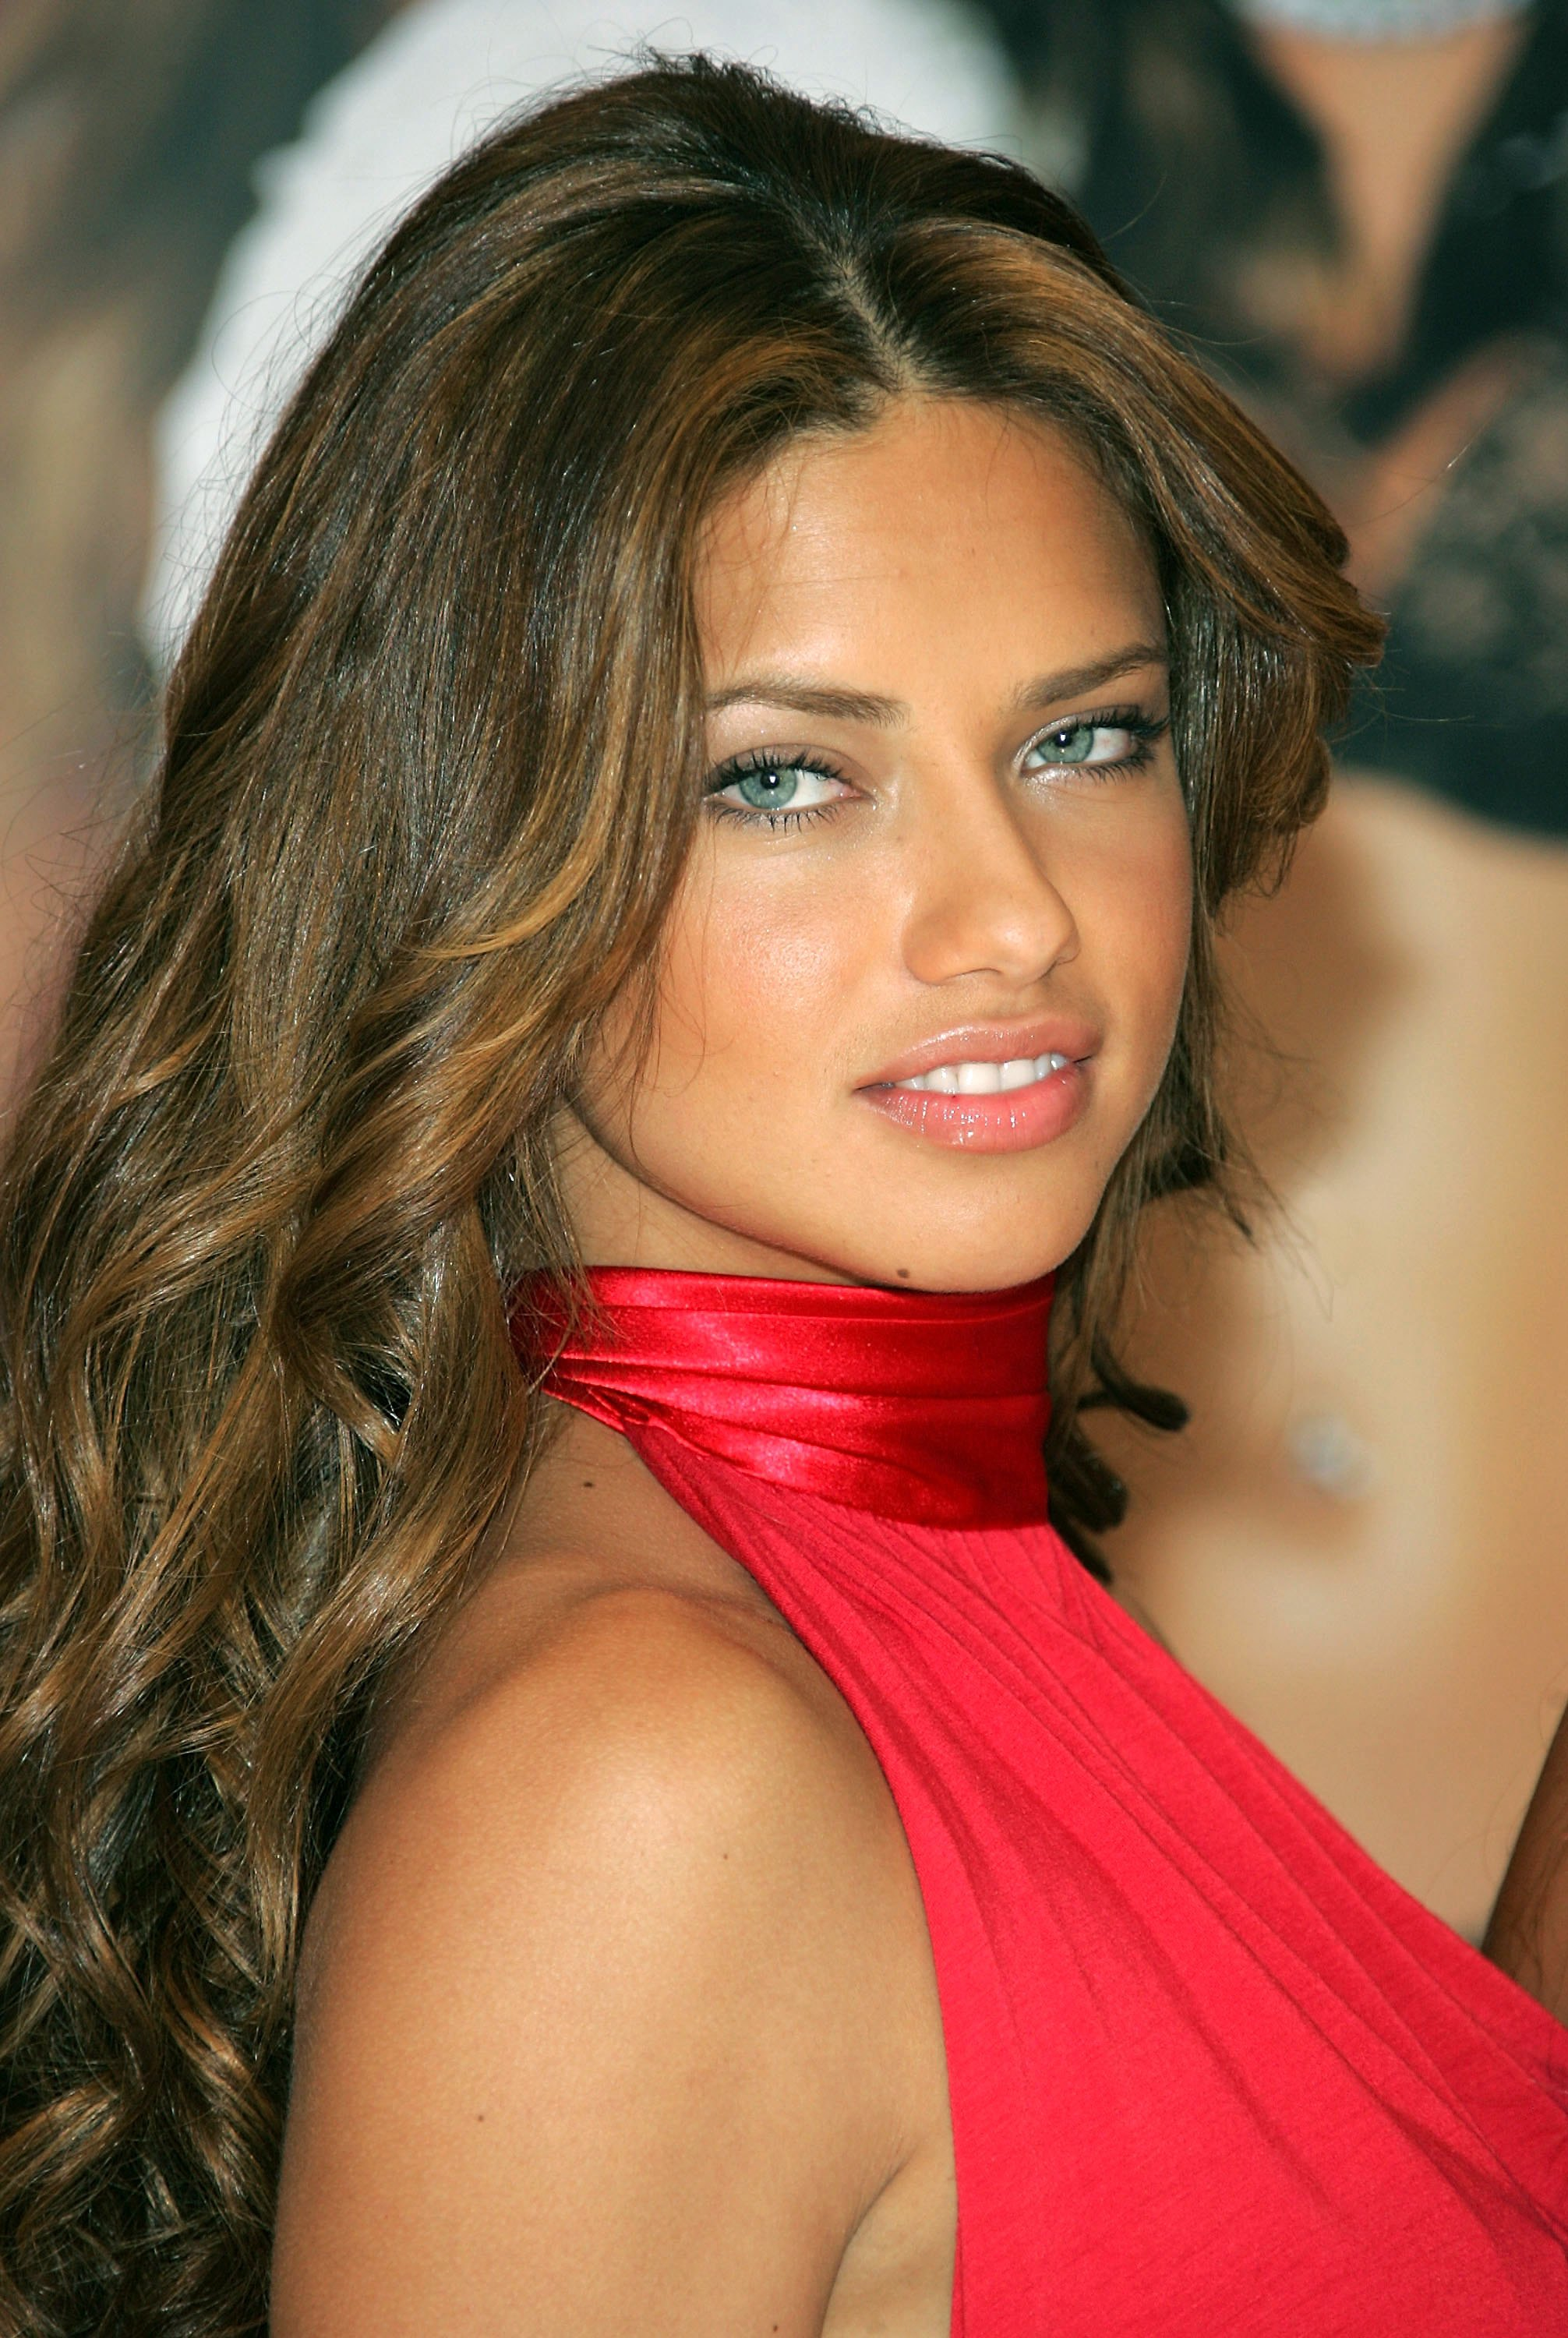 free adriana lima beautiful still background hd mobile download pictures